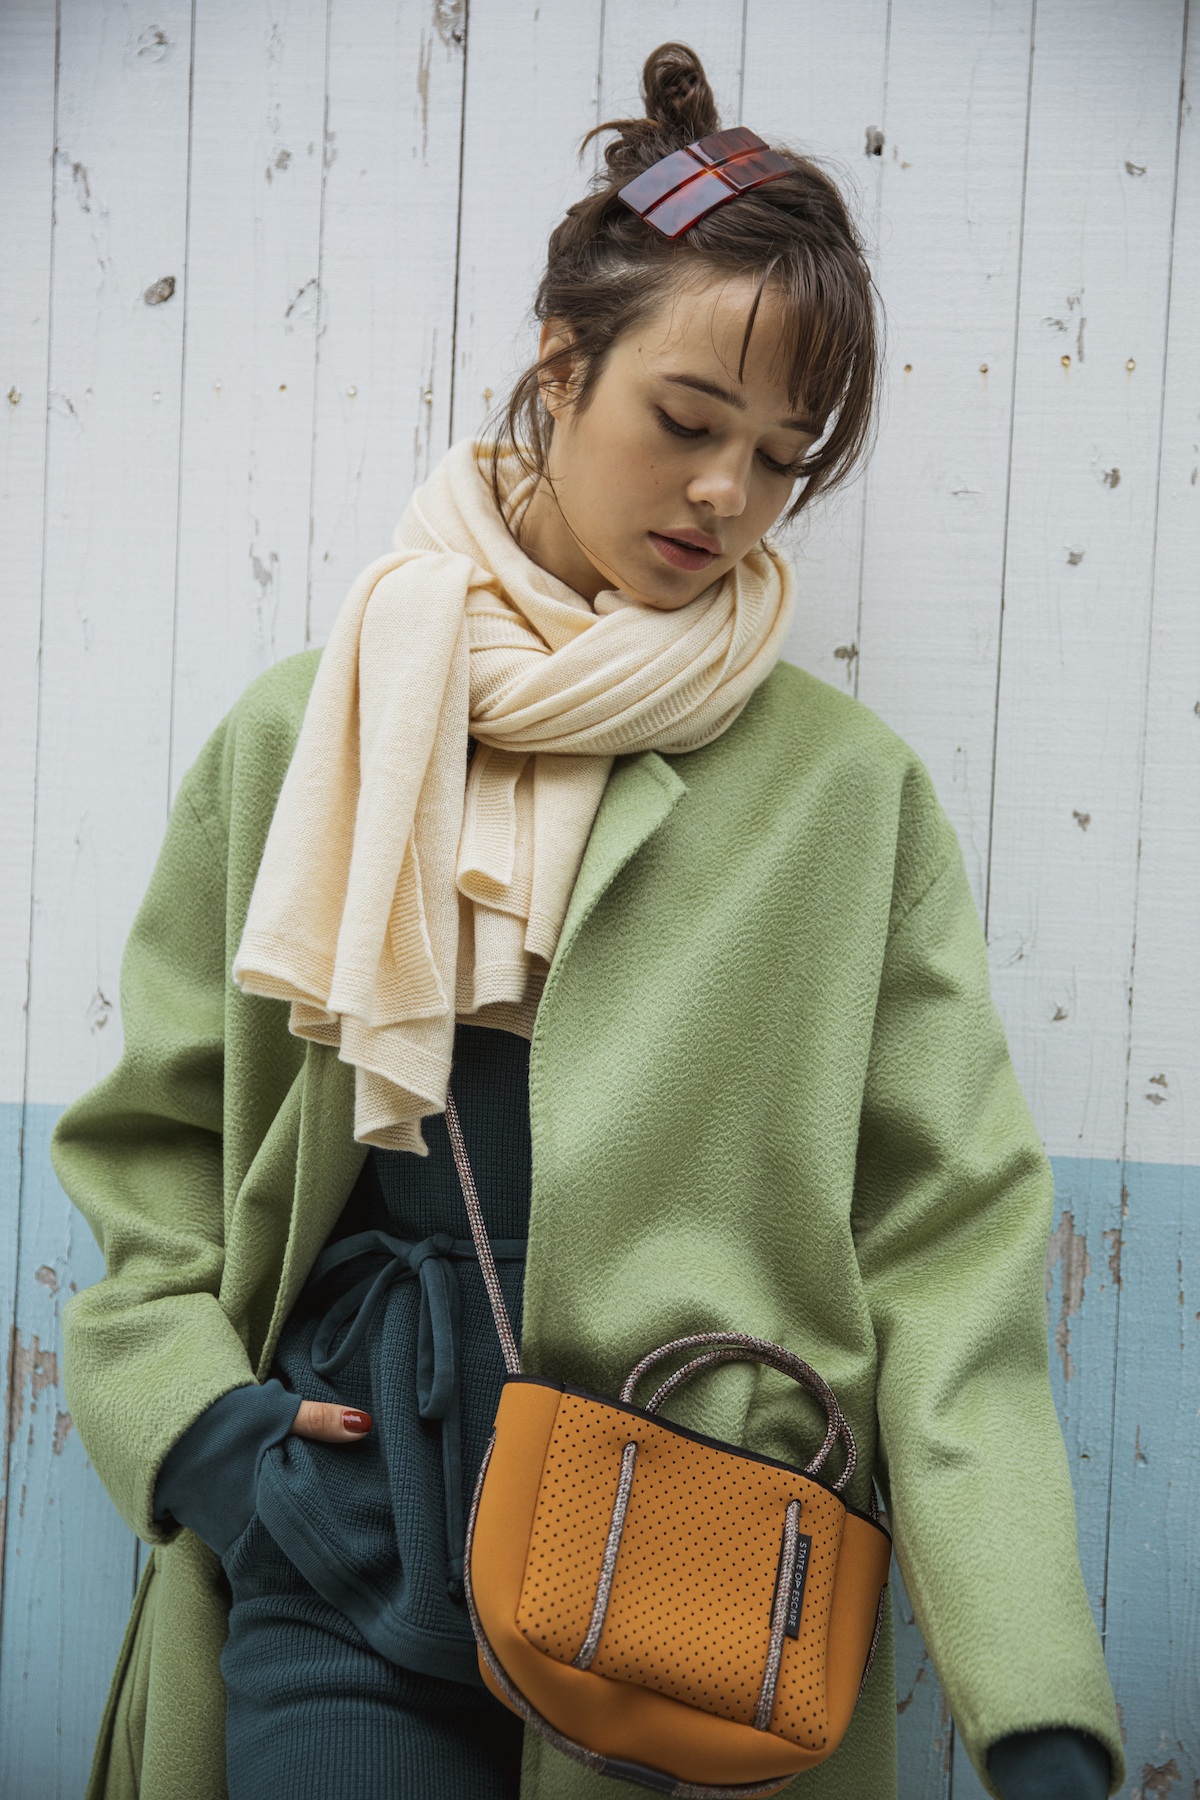 16_2	